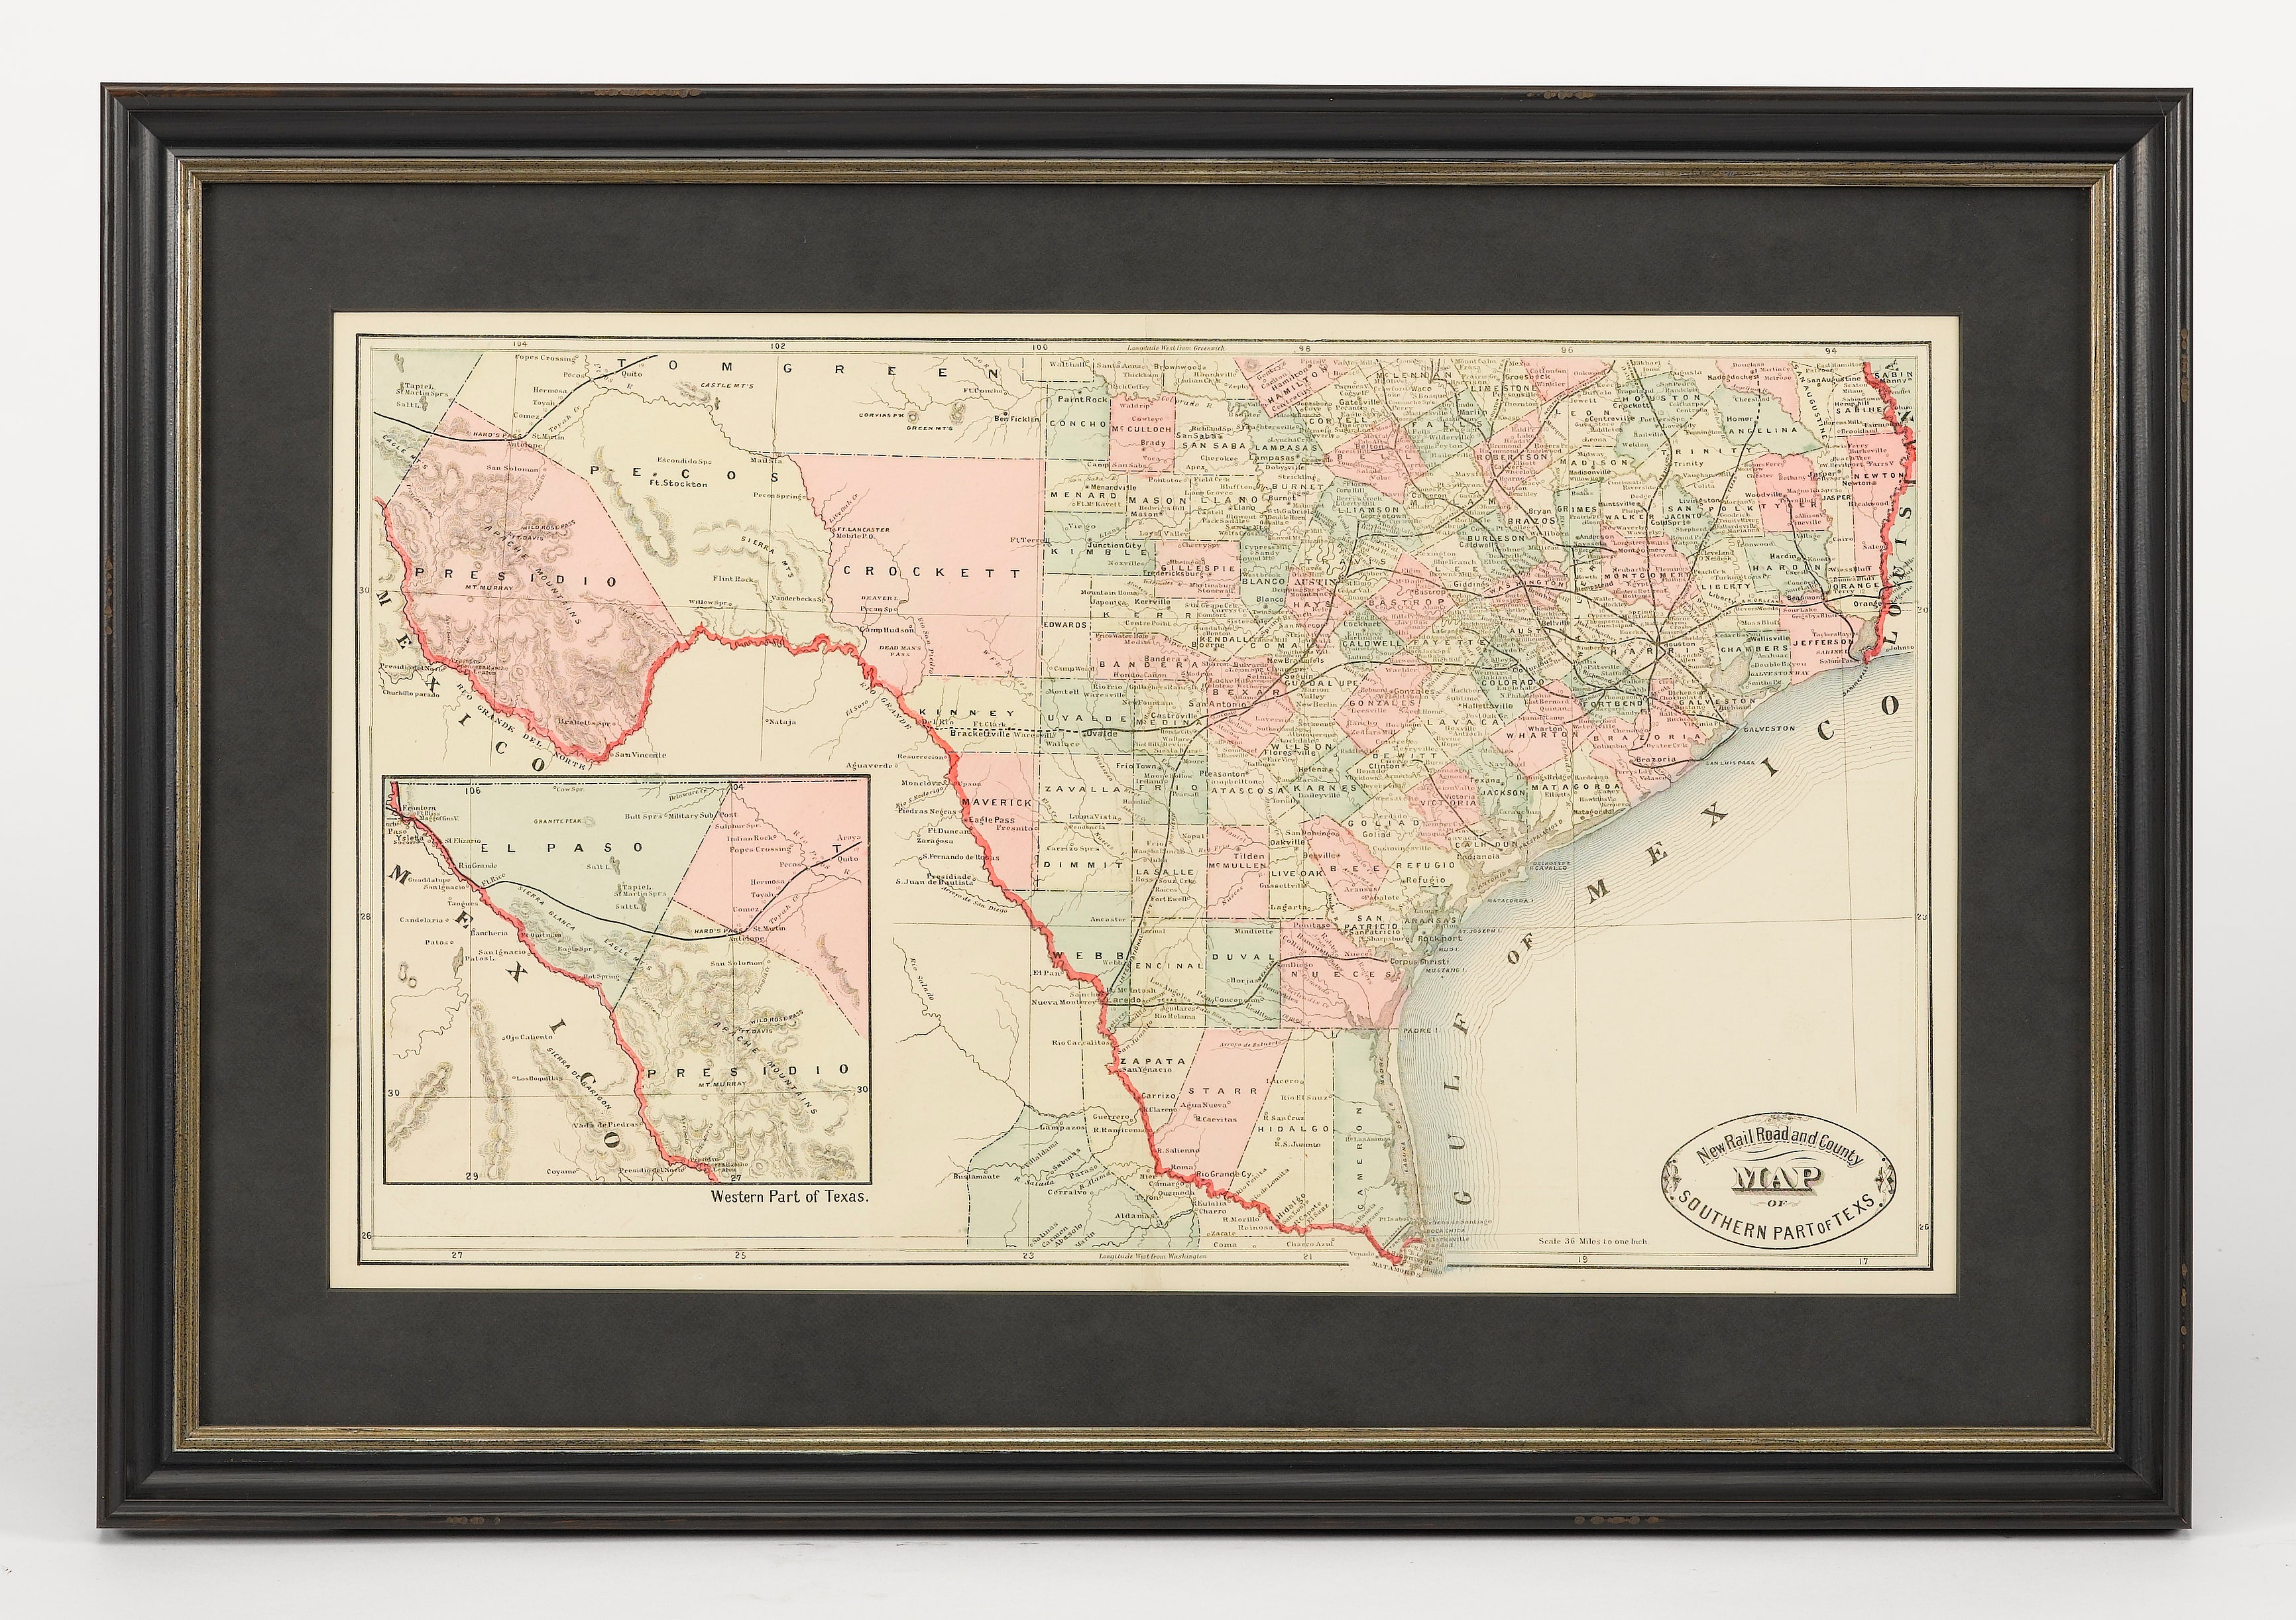 Map Of Texas Railroads.New Rail Road And County Map Of The Southern Part Of Texas By George Cram Circa 1882